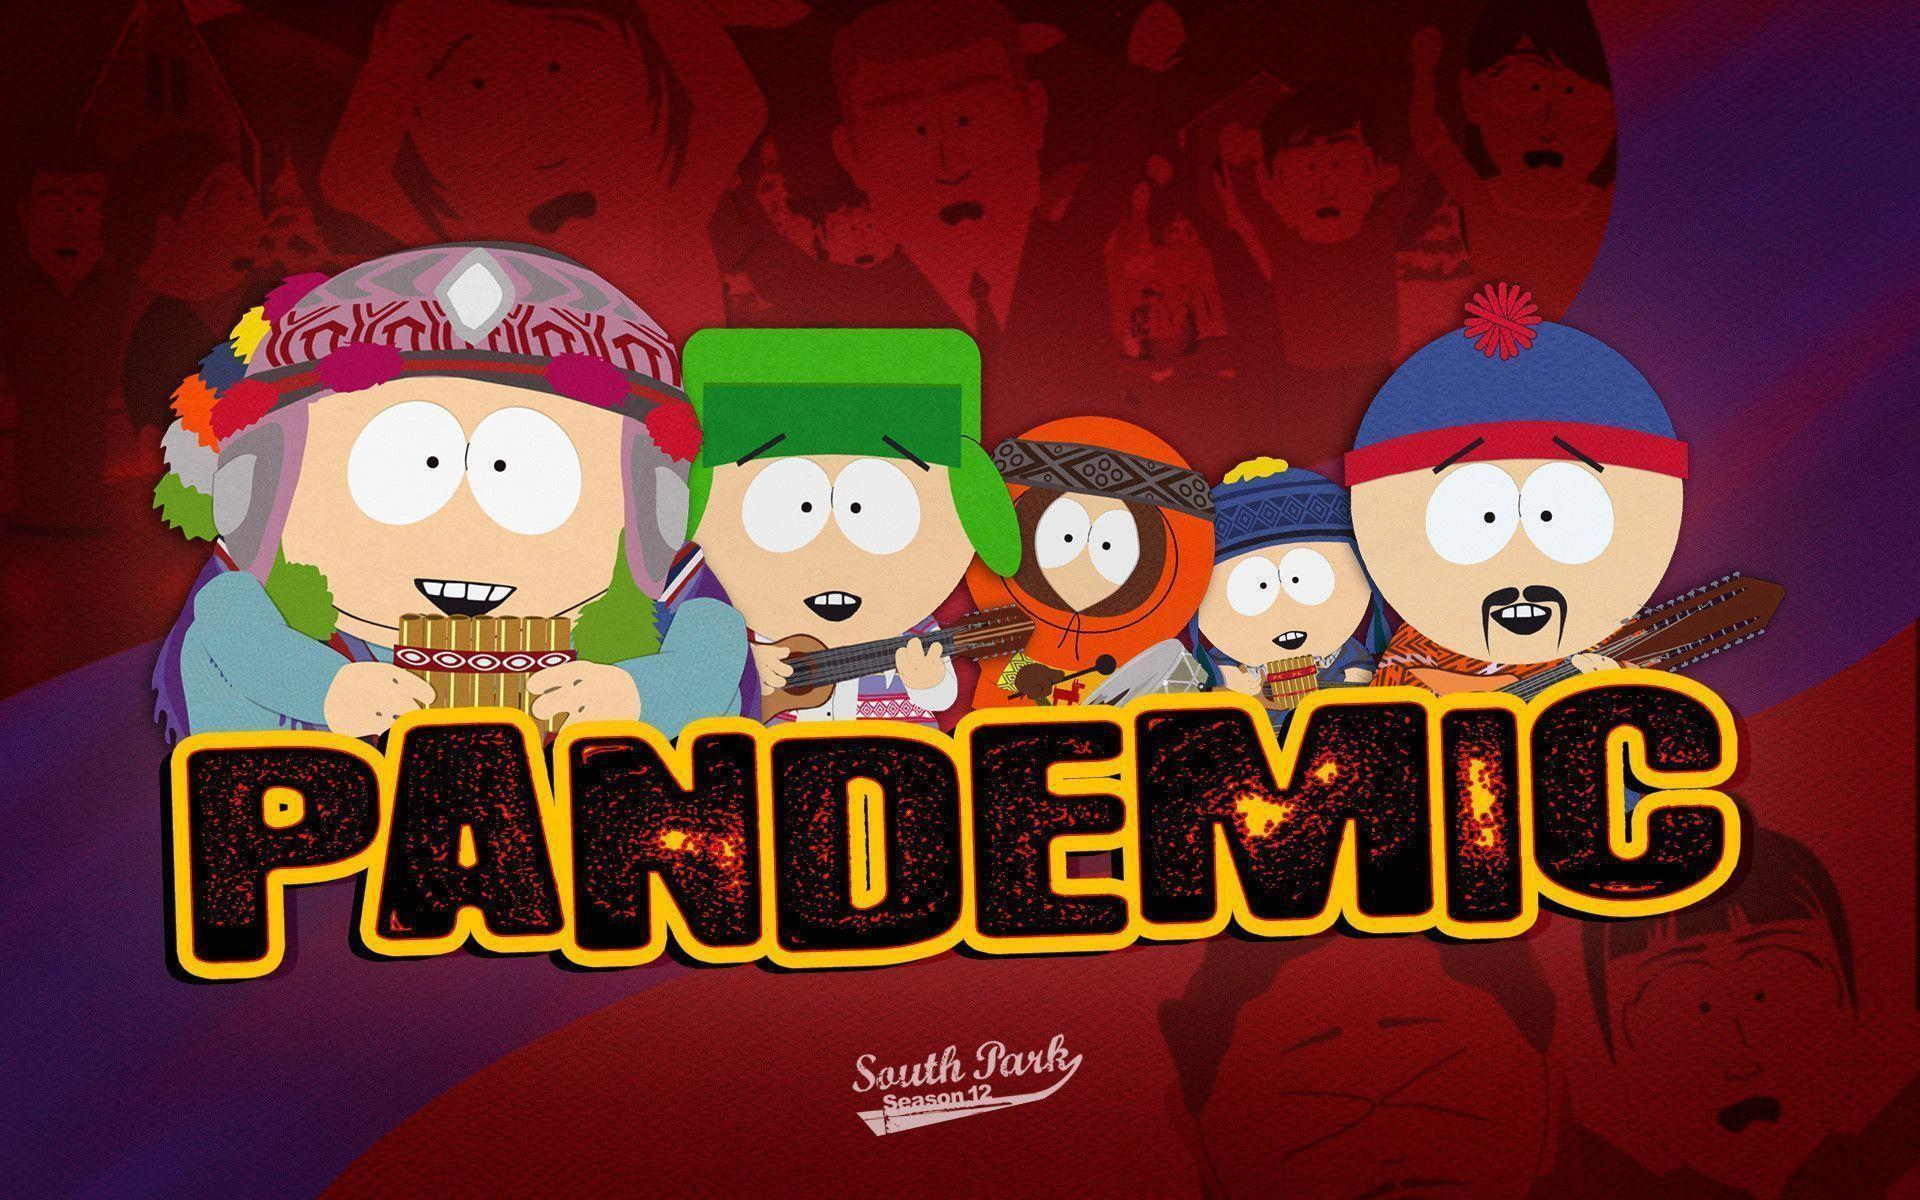 south park desktop wallpaper